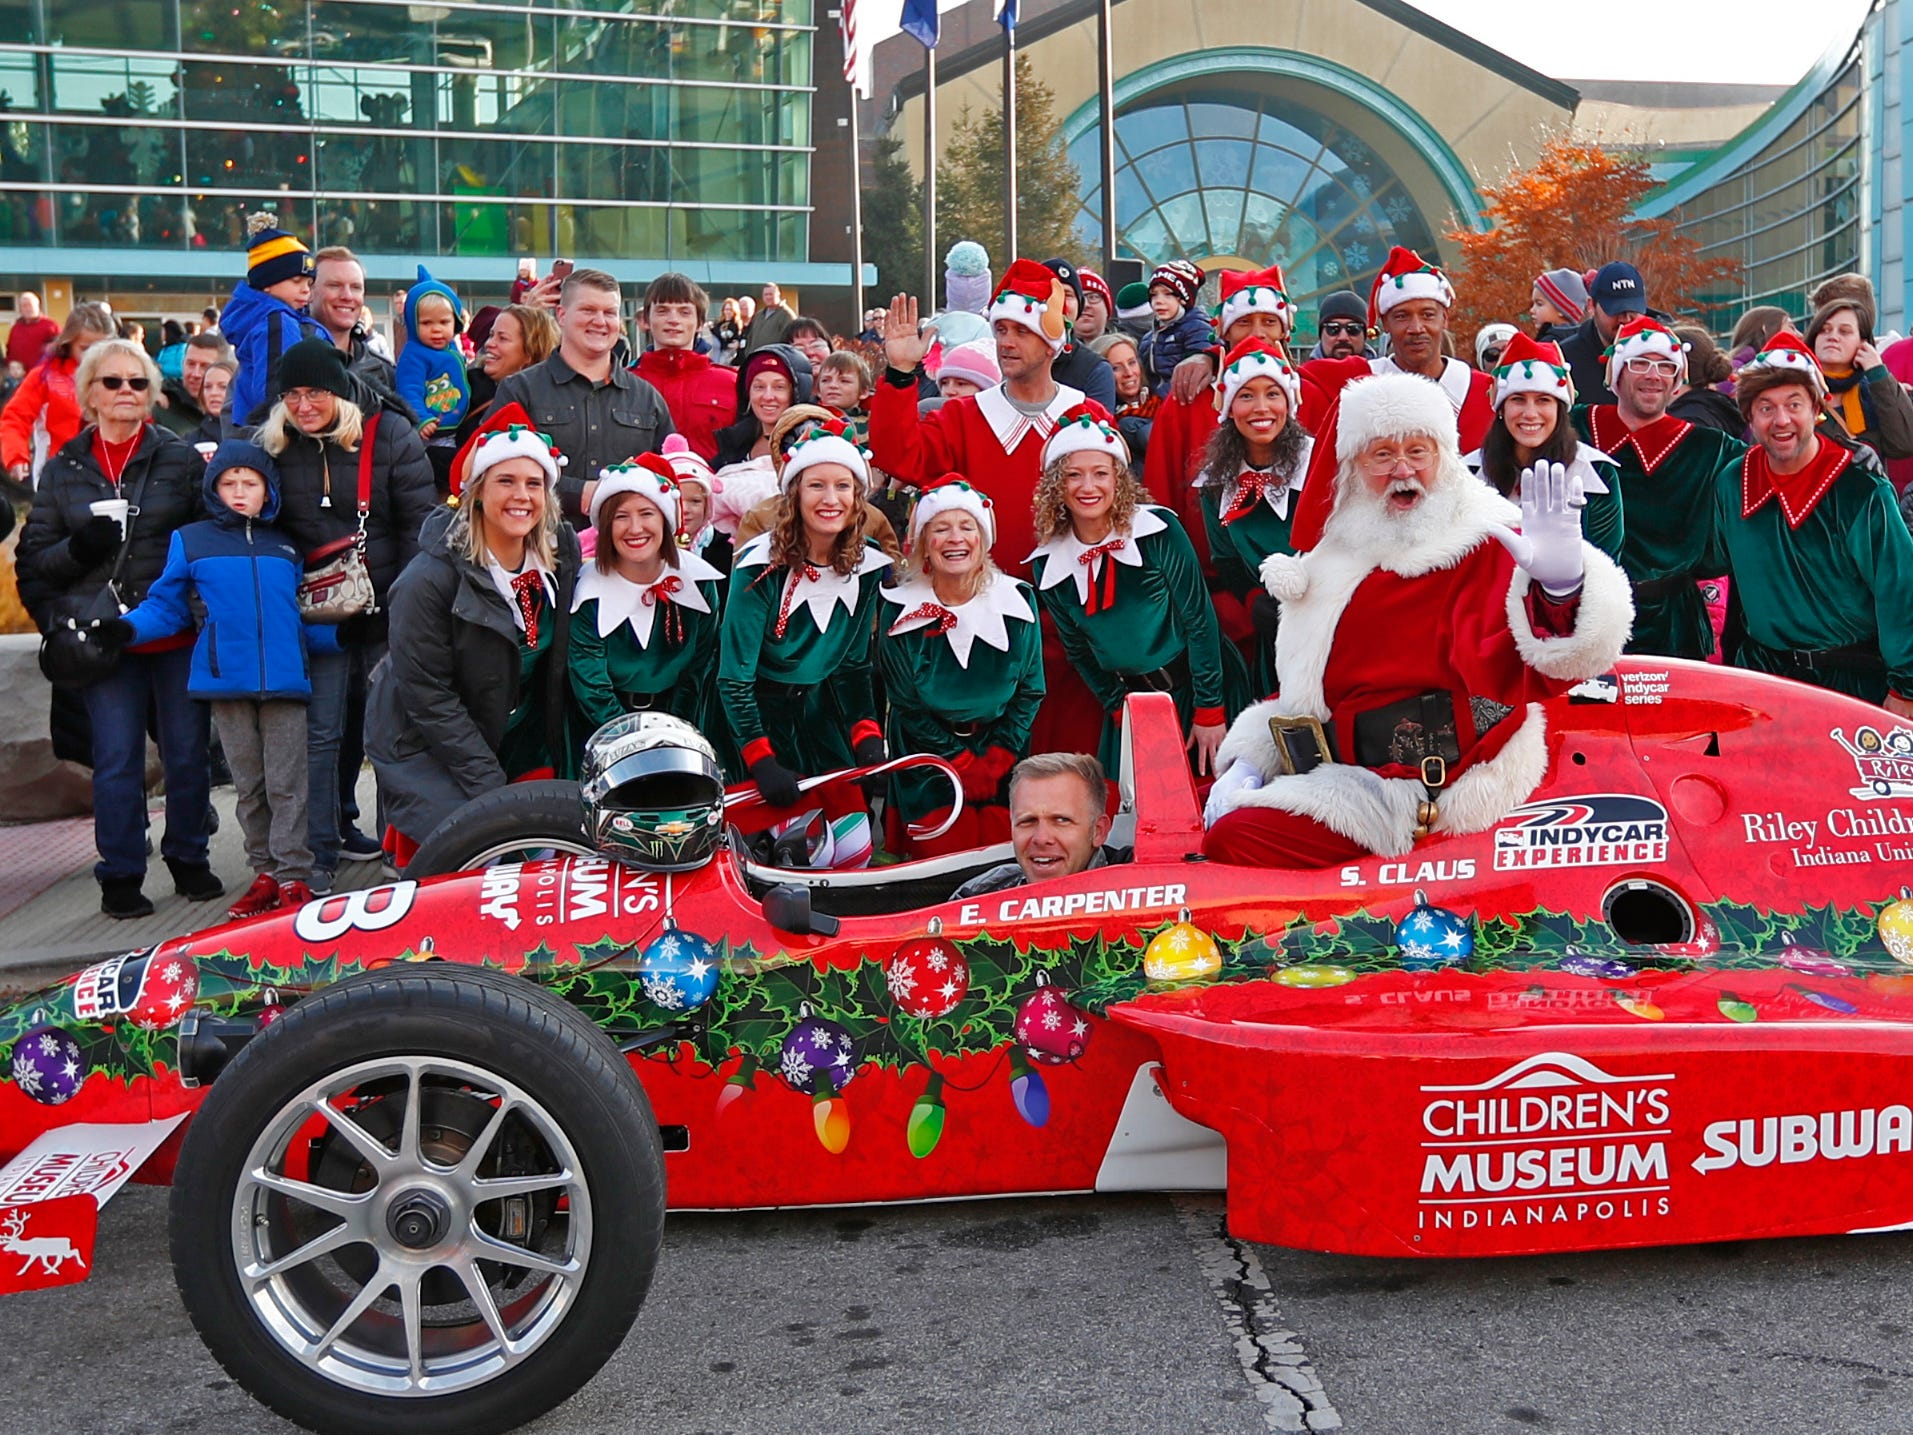 Santa poses for photos after he arrived at the Children's Museum of Indianapolis in an IndyCar driven by racer Ed Carpenter, Friday, Nov. 23, 2018.